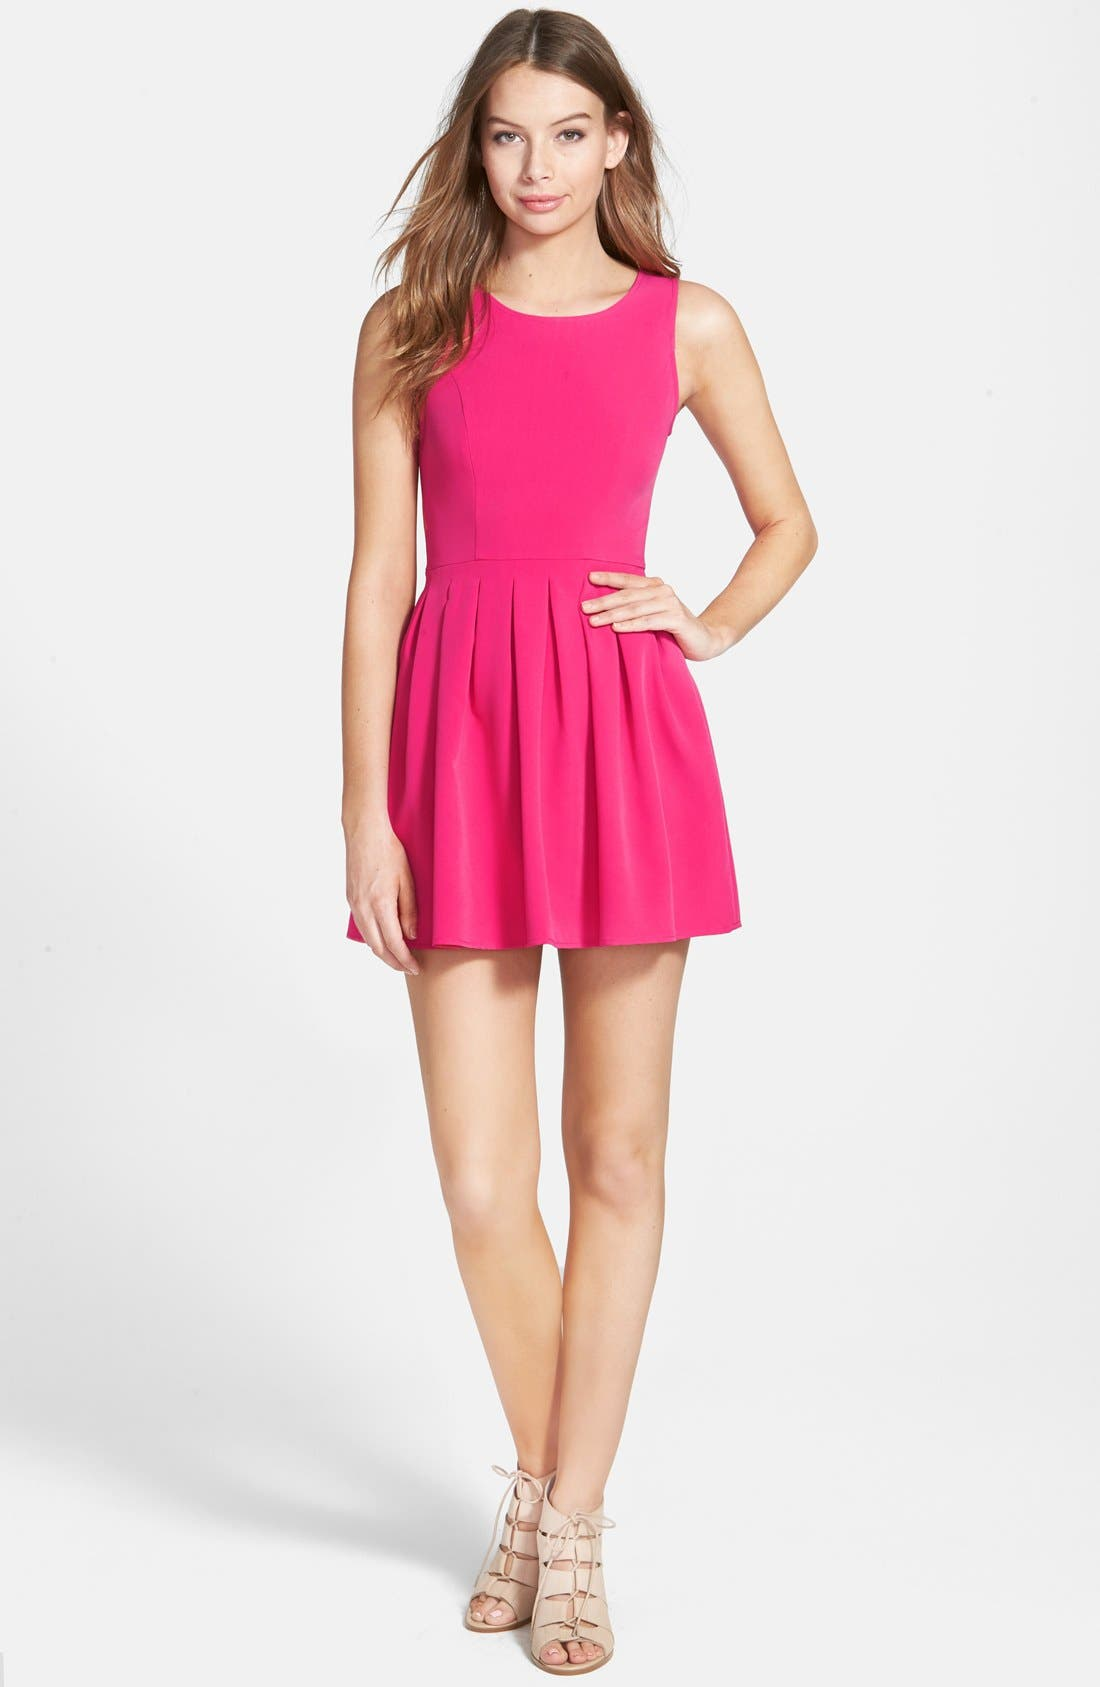 Alternate Image 1 Selected - Smai NYC Pleated Skater Dress